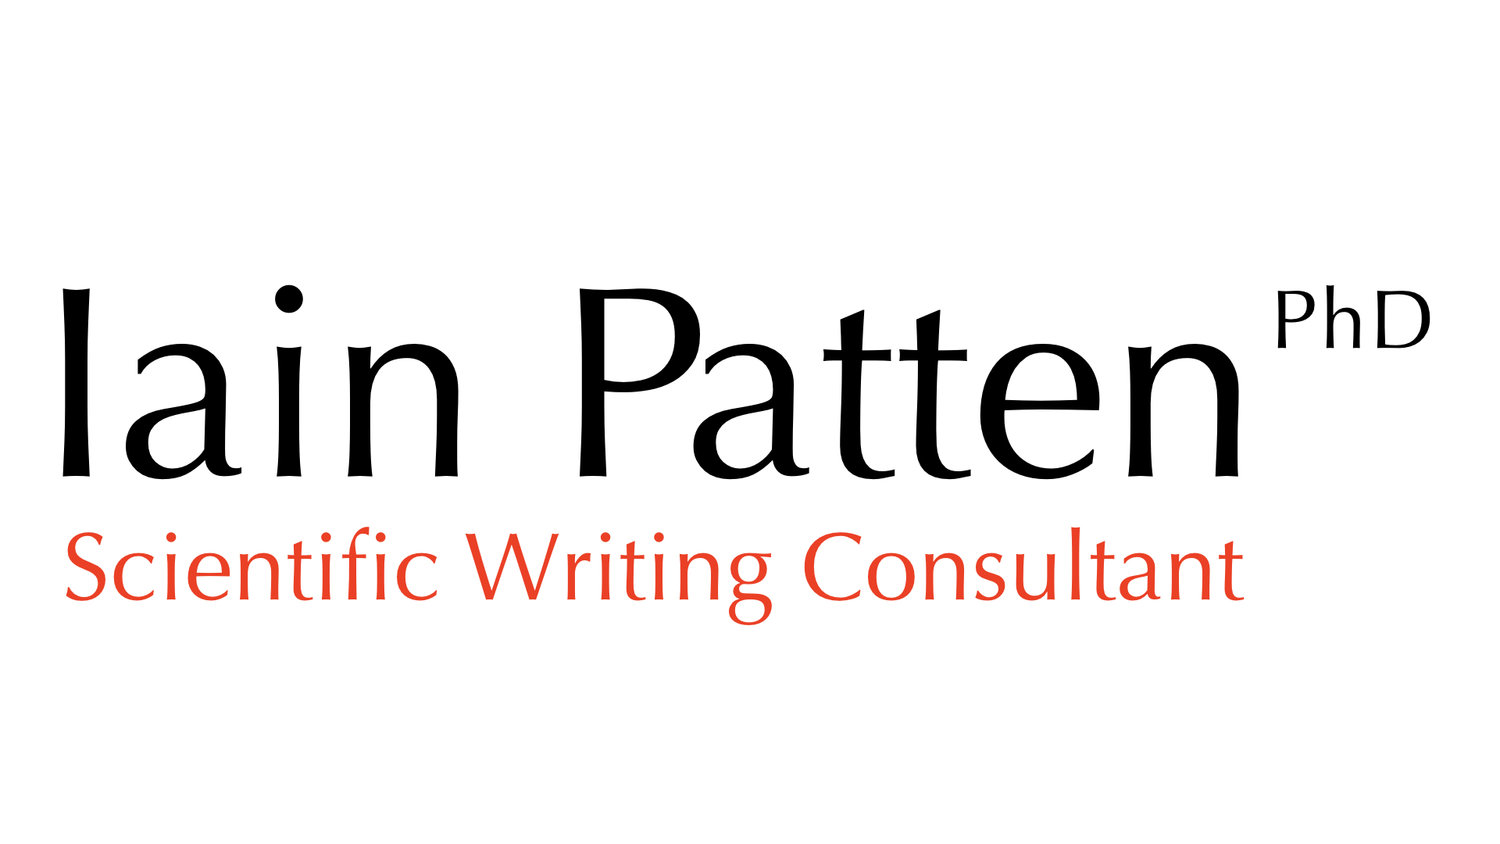 Iain Patten, Scientific Writing Consultant